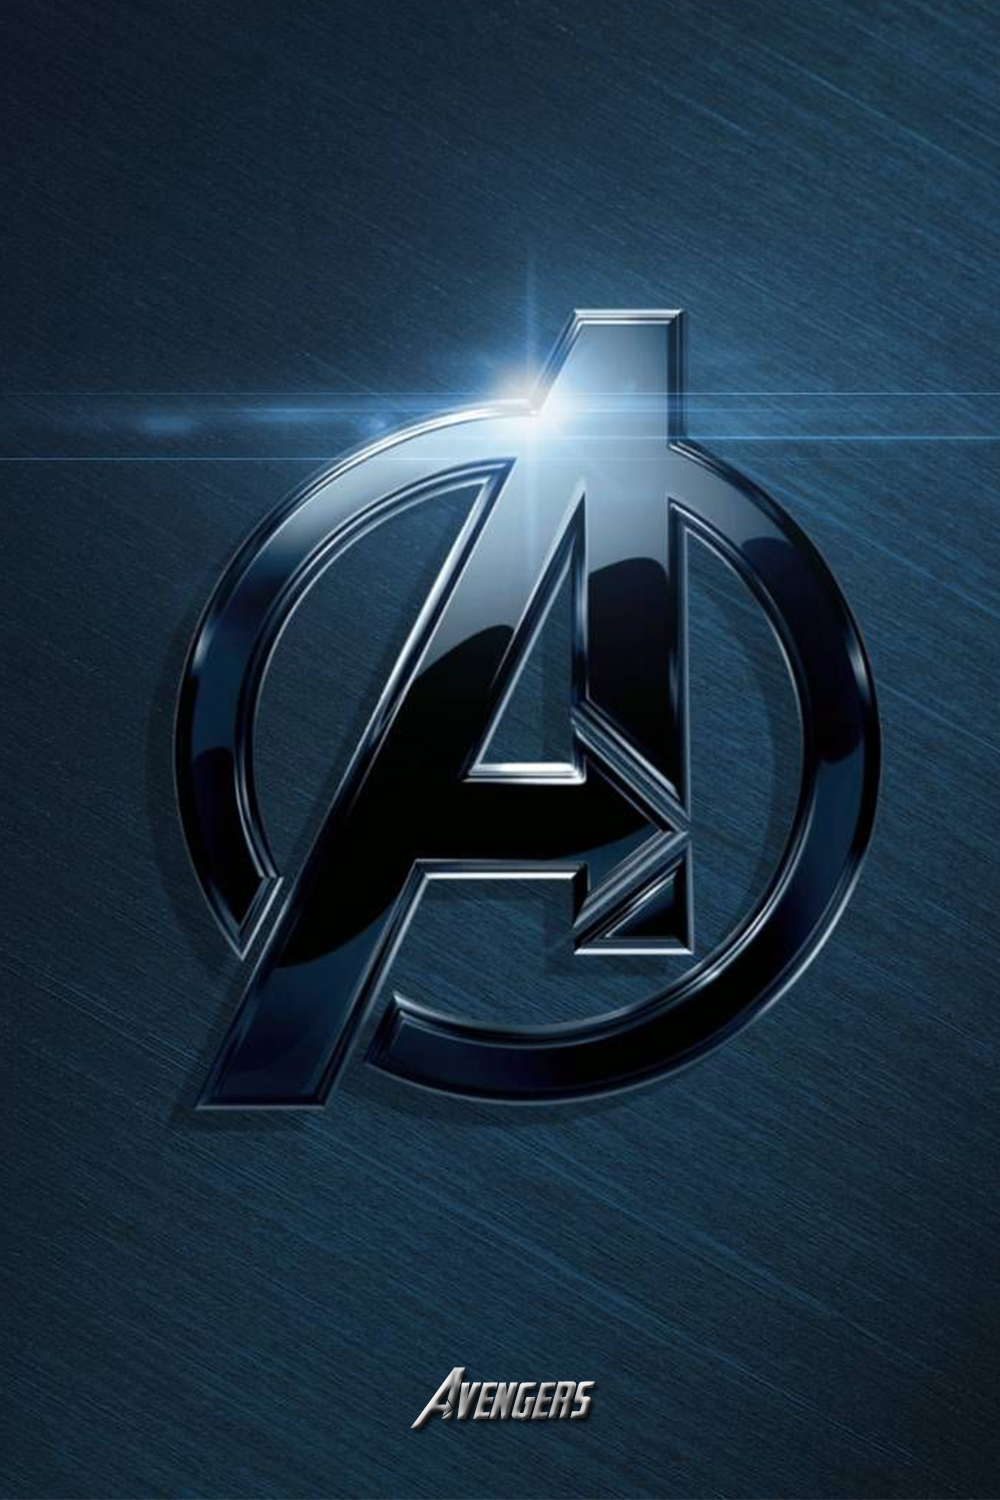 Avengers Logo Iphone In 2020 Avengers Logo Avengers Wallpaper Marvel Wallpaper Hd